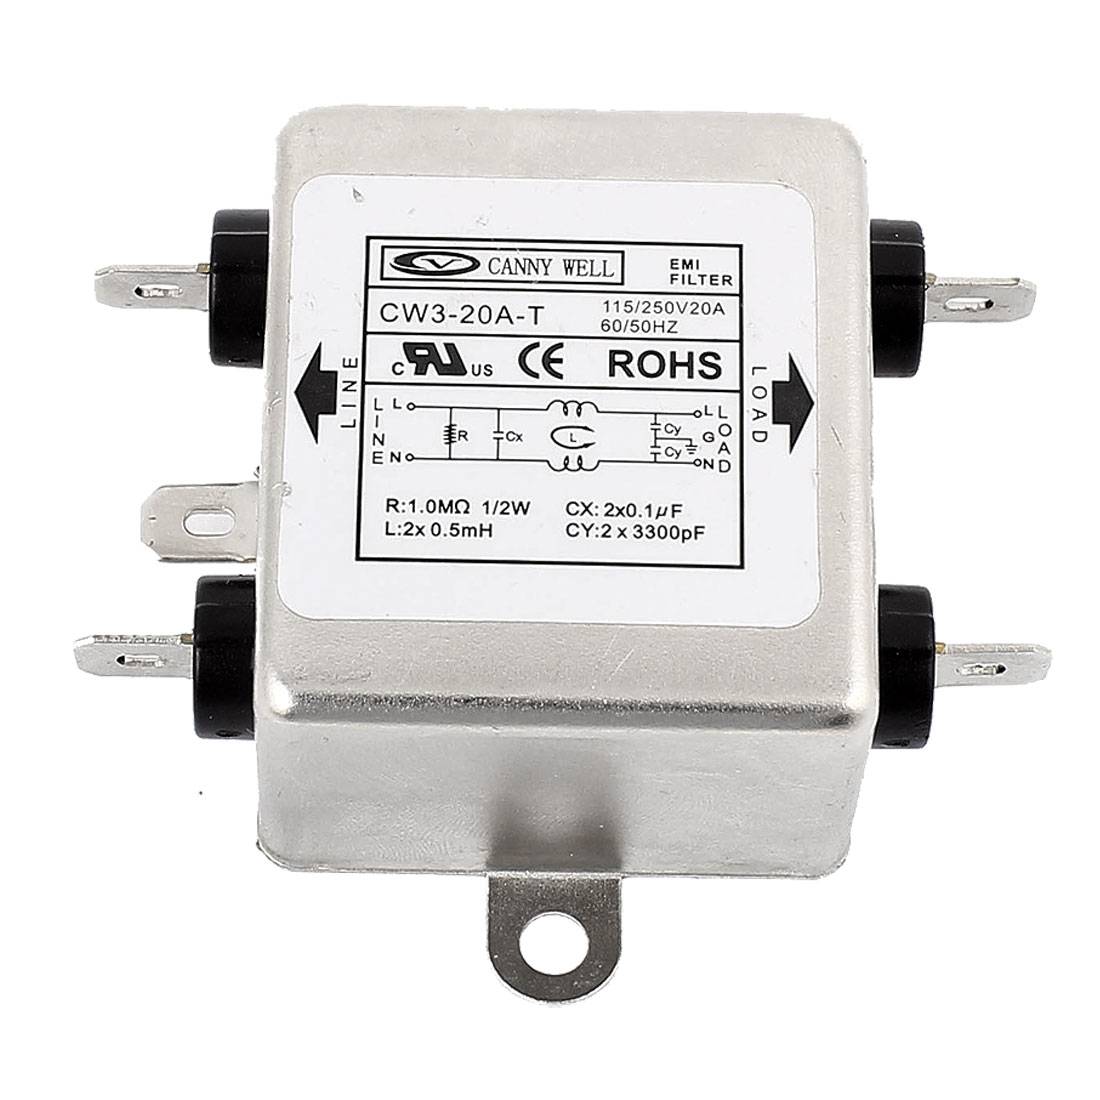 CW3-20A-T AC 115/250V 20A 4-Pin Soldering Metal Case Single Phase Noise Suppressor General Purpose Power EMI Filter